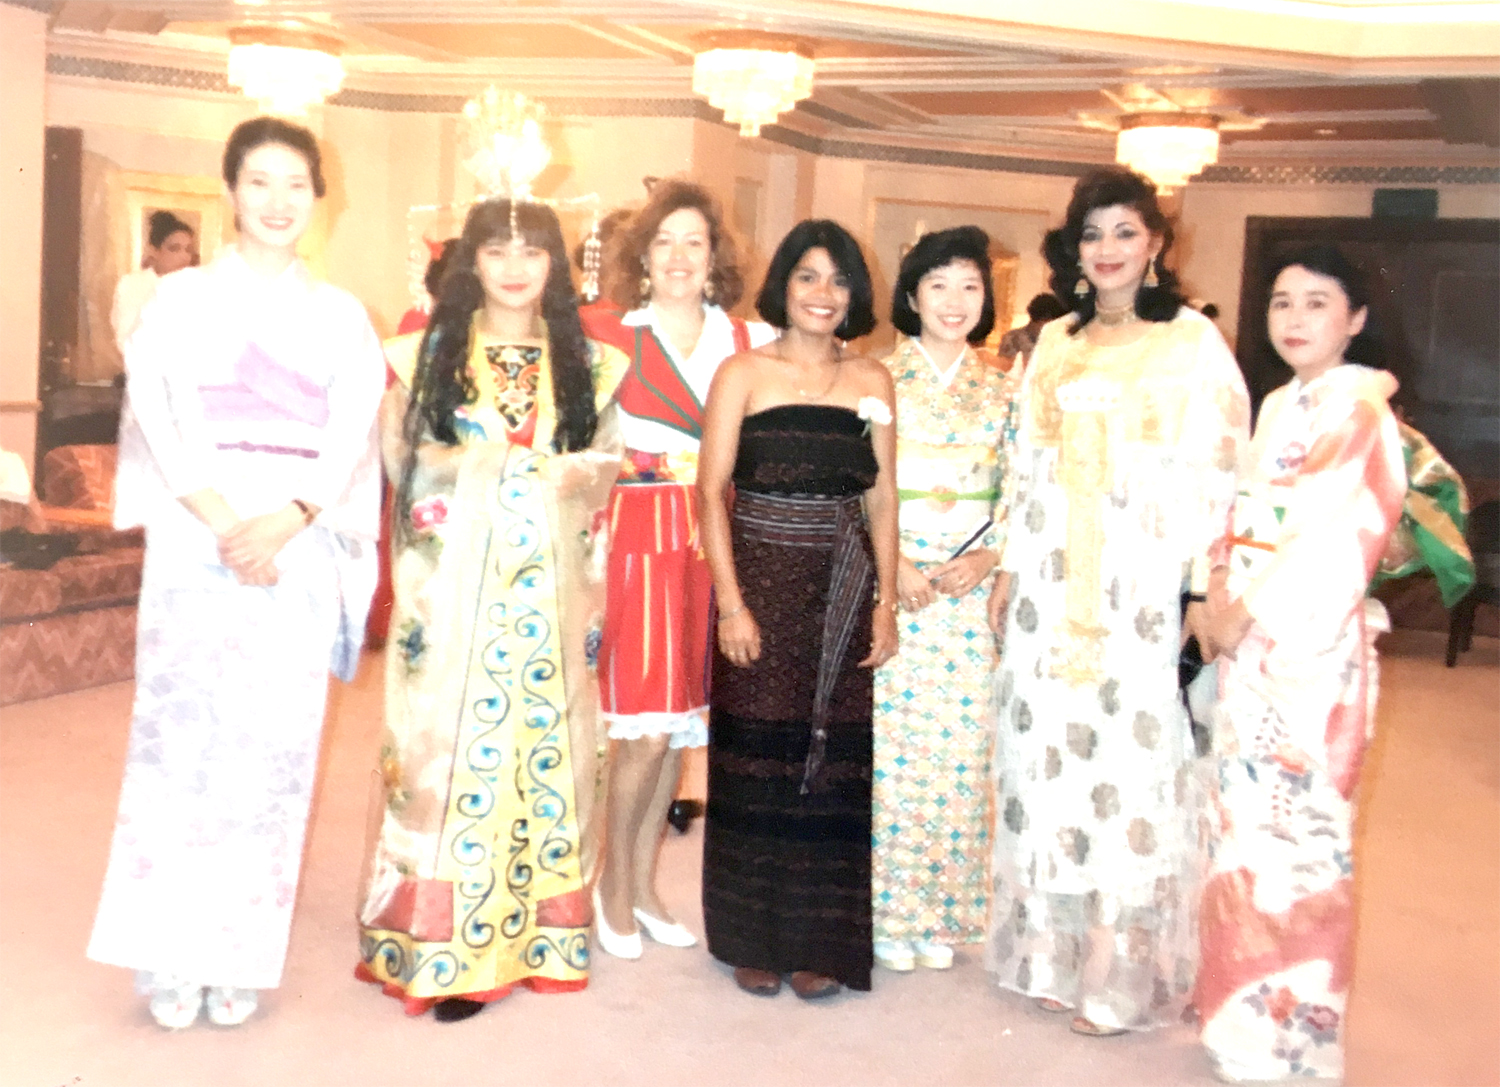 Memory of International Fashion Parade in Muscat, Oman in 1991, showing my Ikat in the Gulf